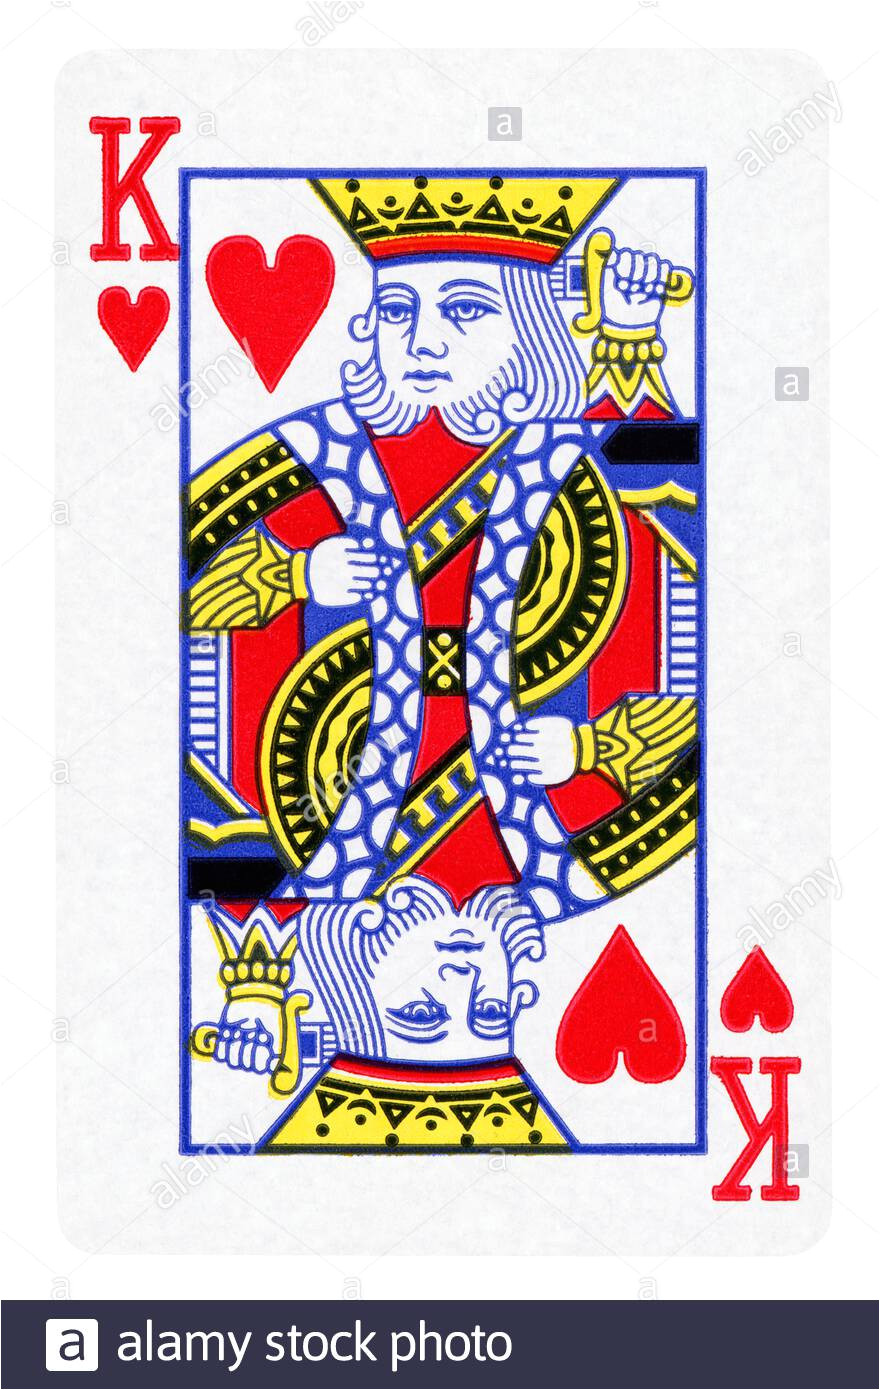 king of hearts vintage playing card isolated on white clipping path included 2axwwe6 jpg